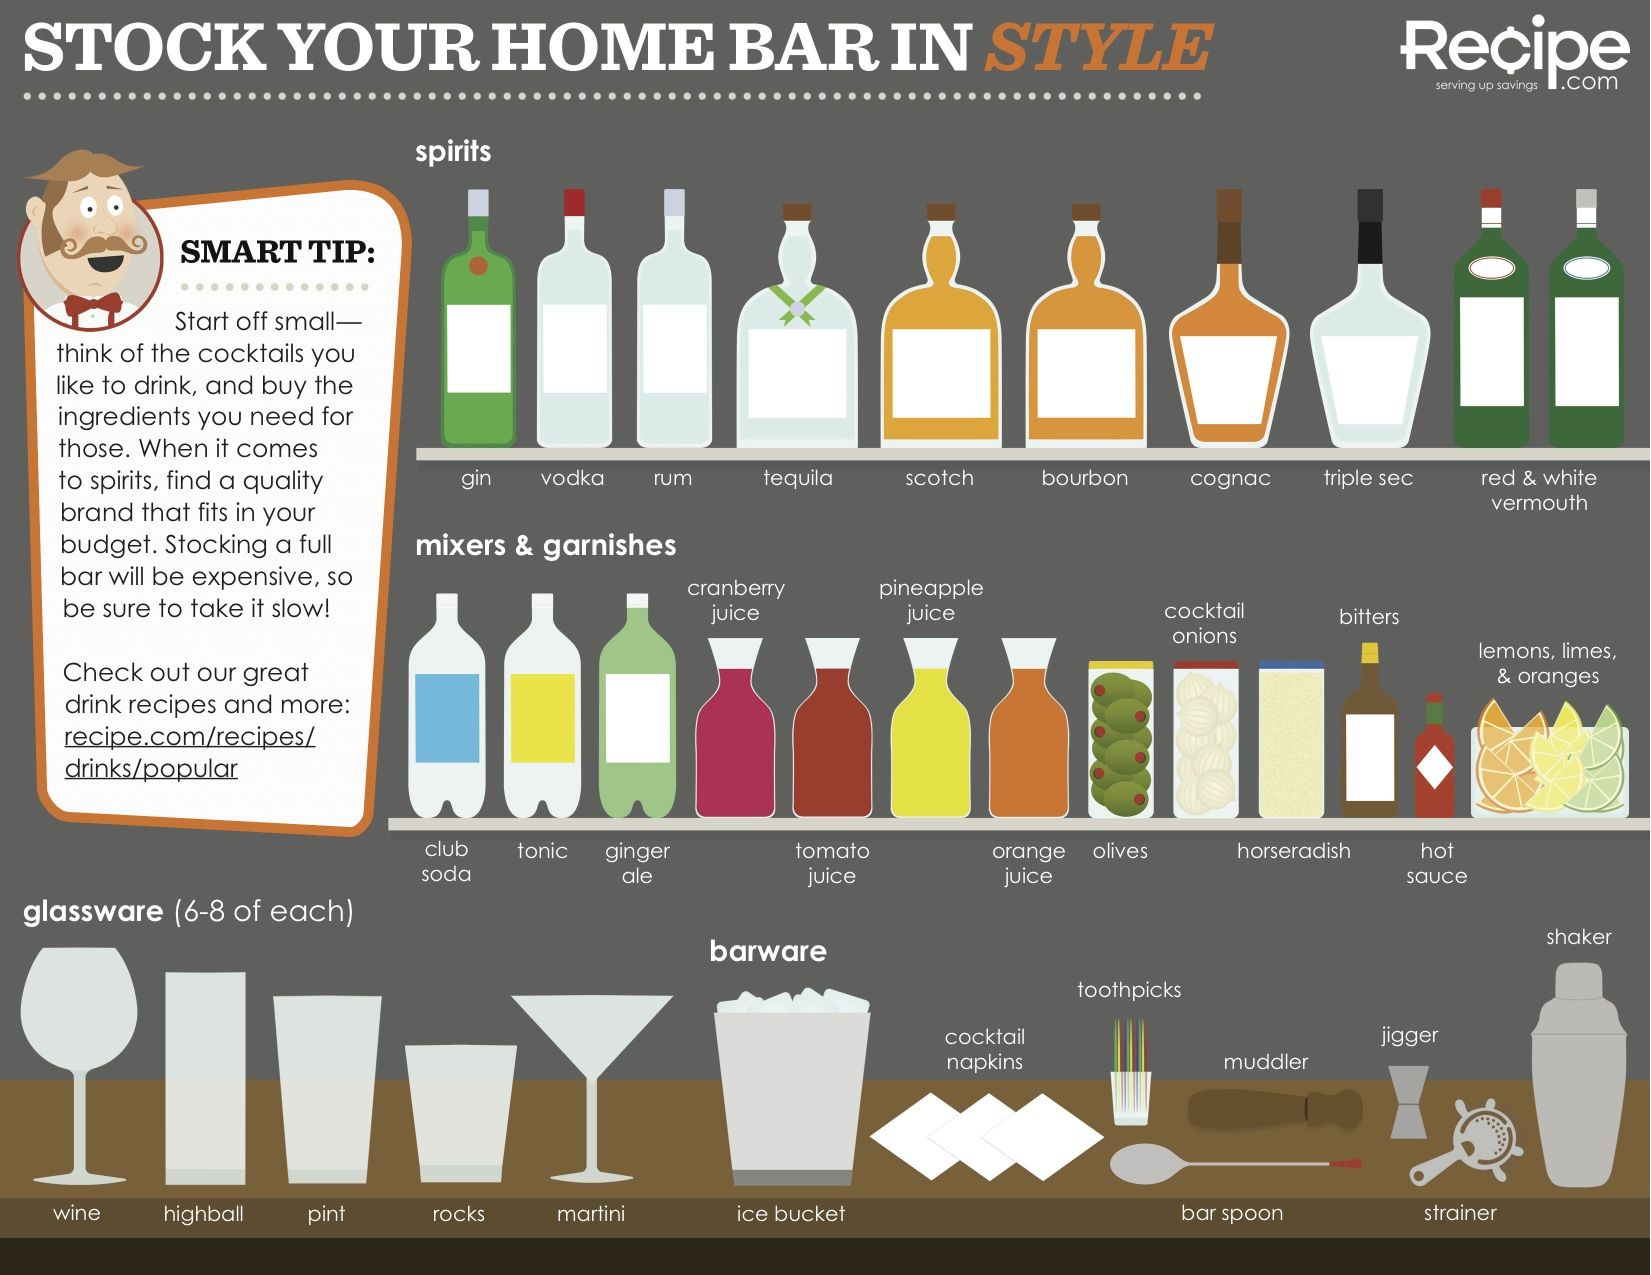 Stocking A Home Bar